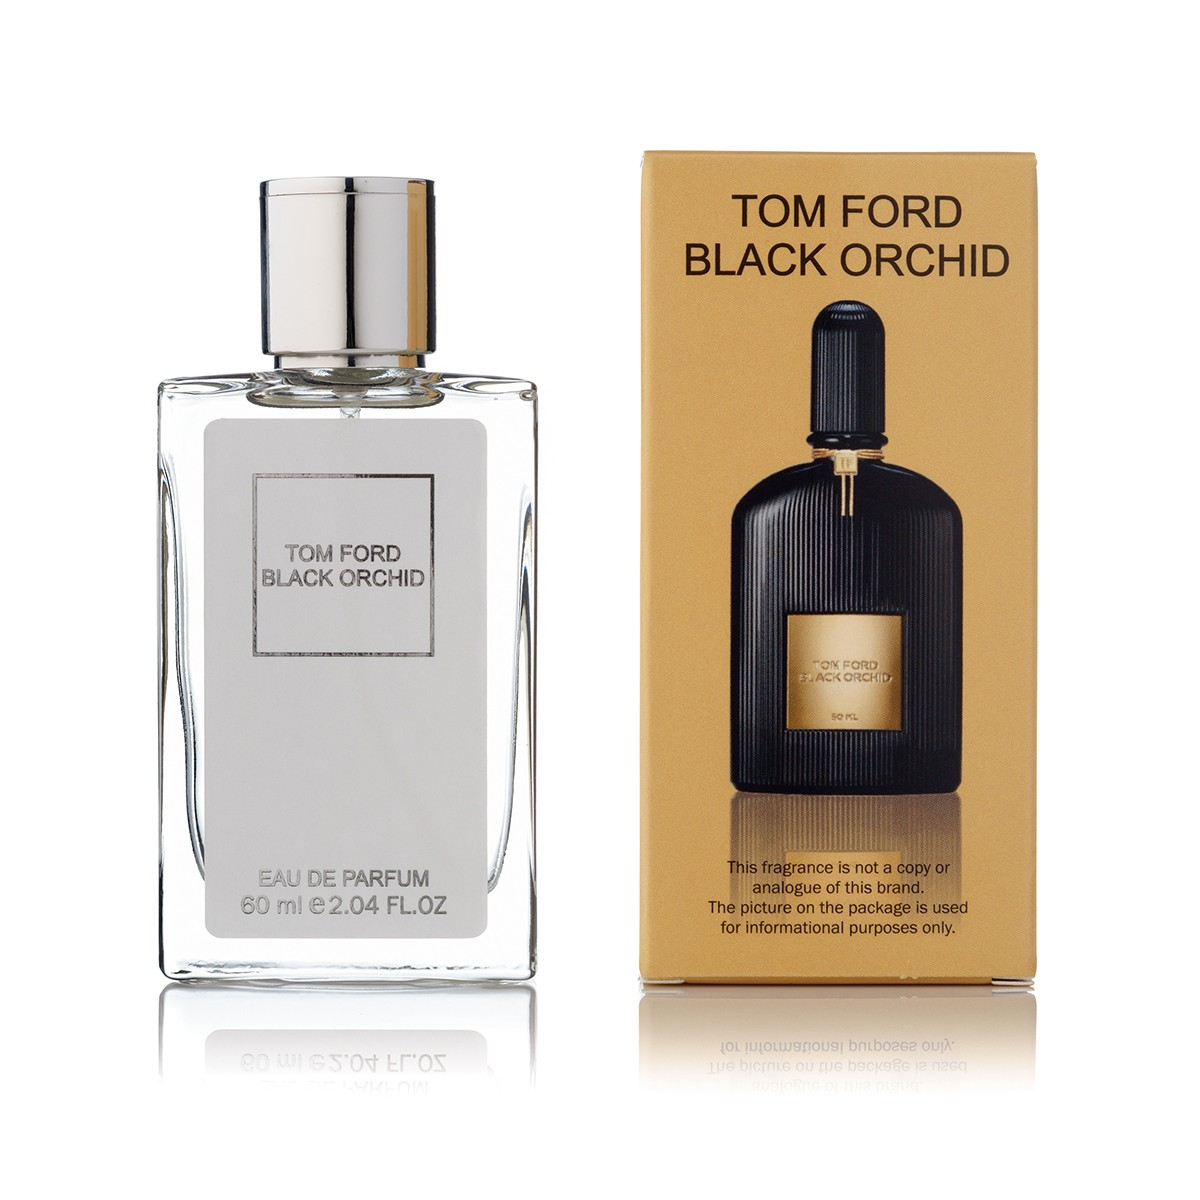 Tom Ford Black Orchid edp 60 ml tester color box